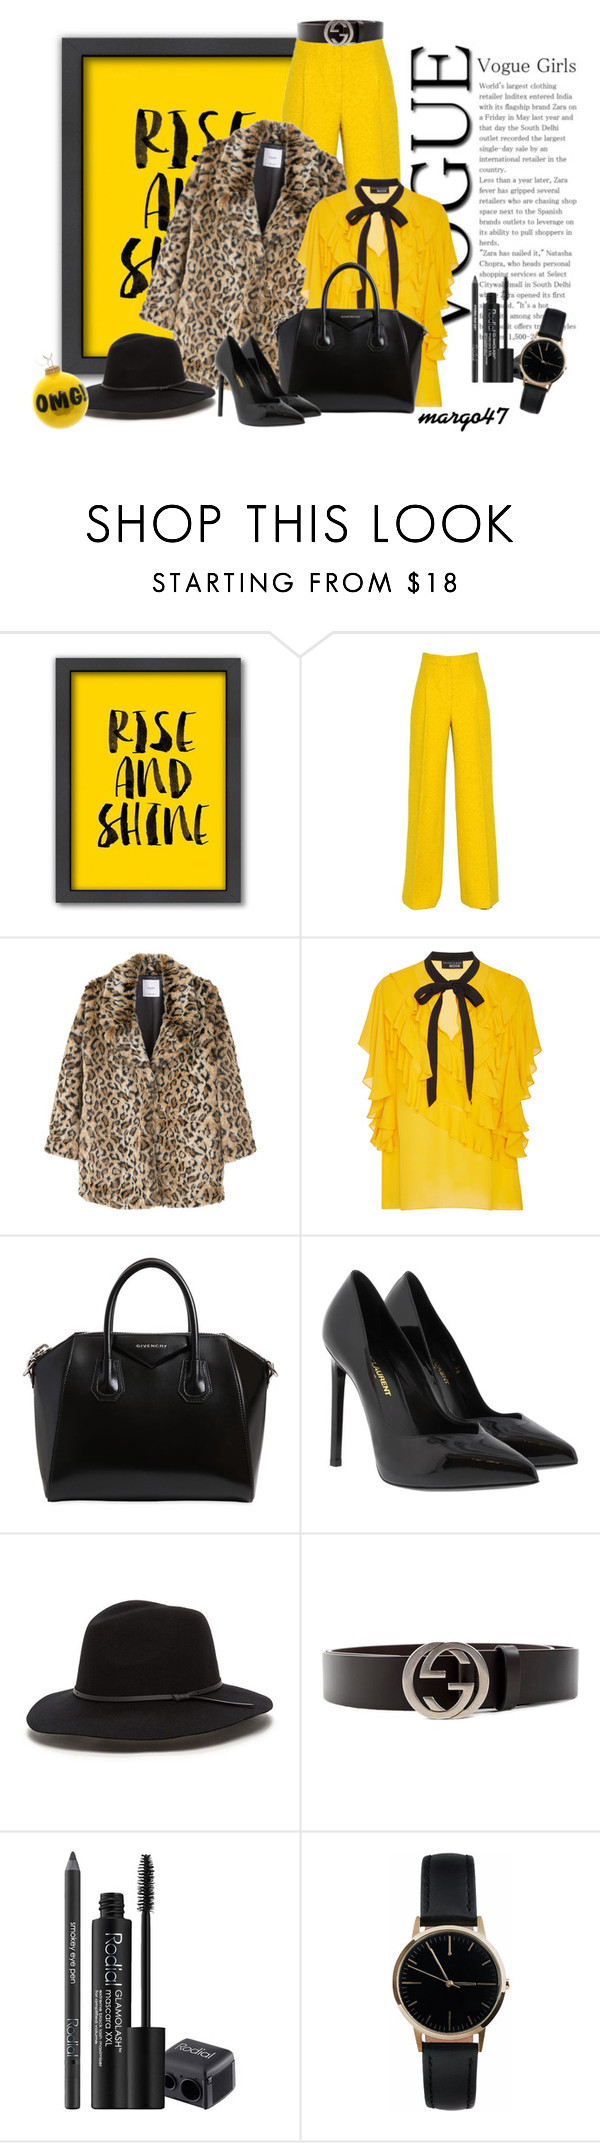 """zima"" by margo47 ❤ liked on Polyvore featuring Americanflat, MaxMara, MANGO, Sachin + Babi, Givenchy, Yves Saint Laurent, Gucci, Rodial and Freedom To Exist"